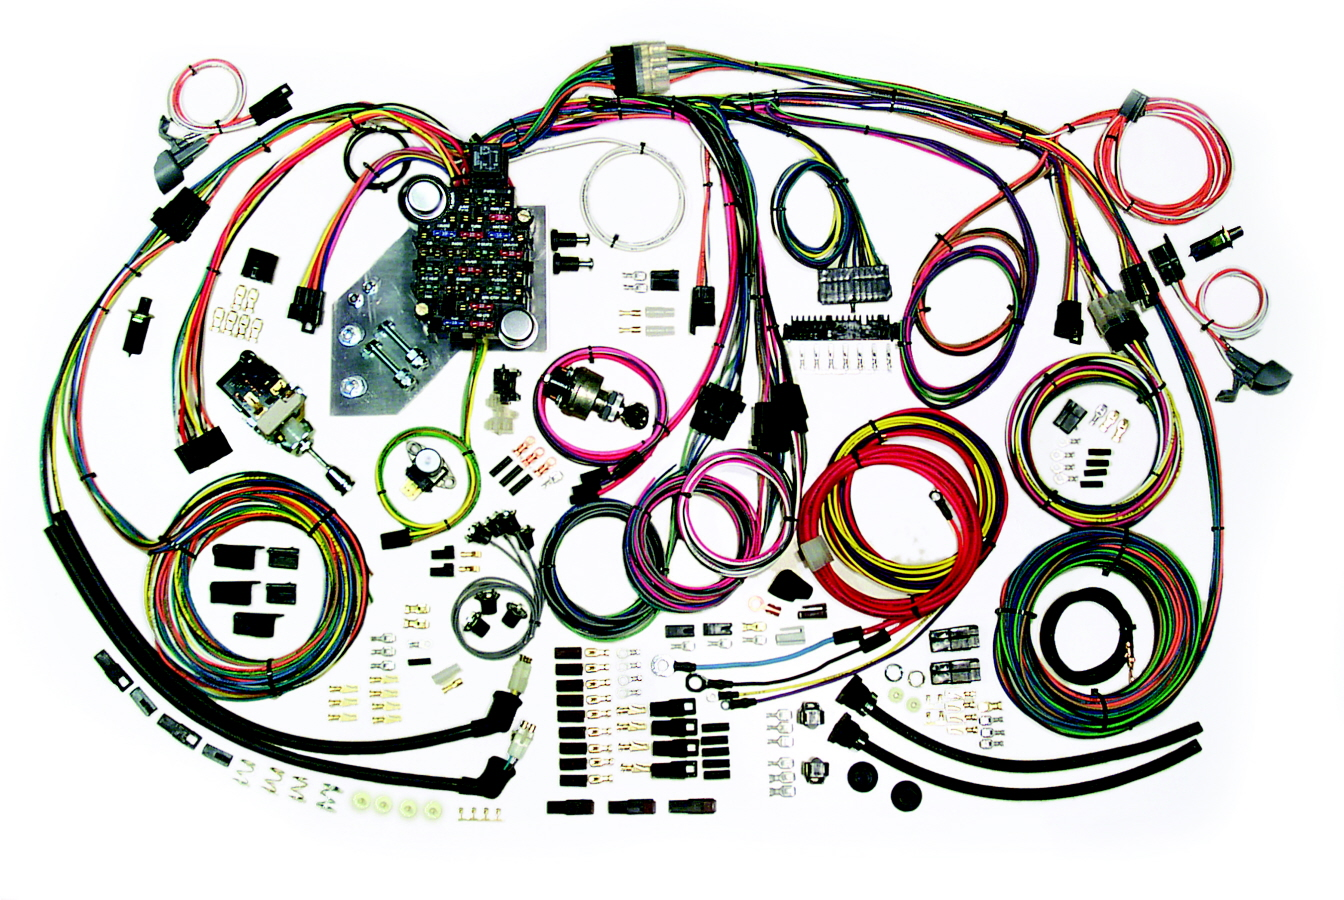 Wiring Harness Kits By American Autowire Ididit